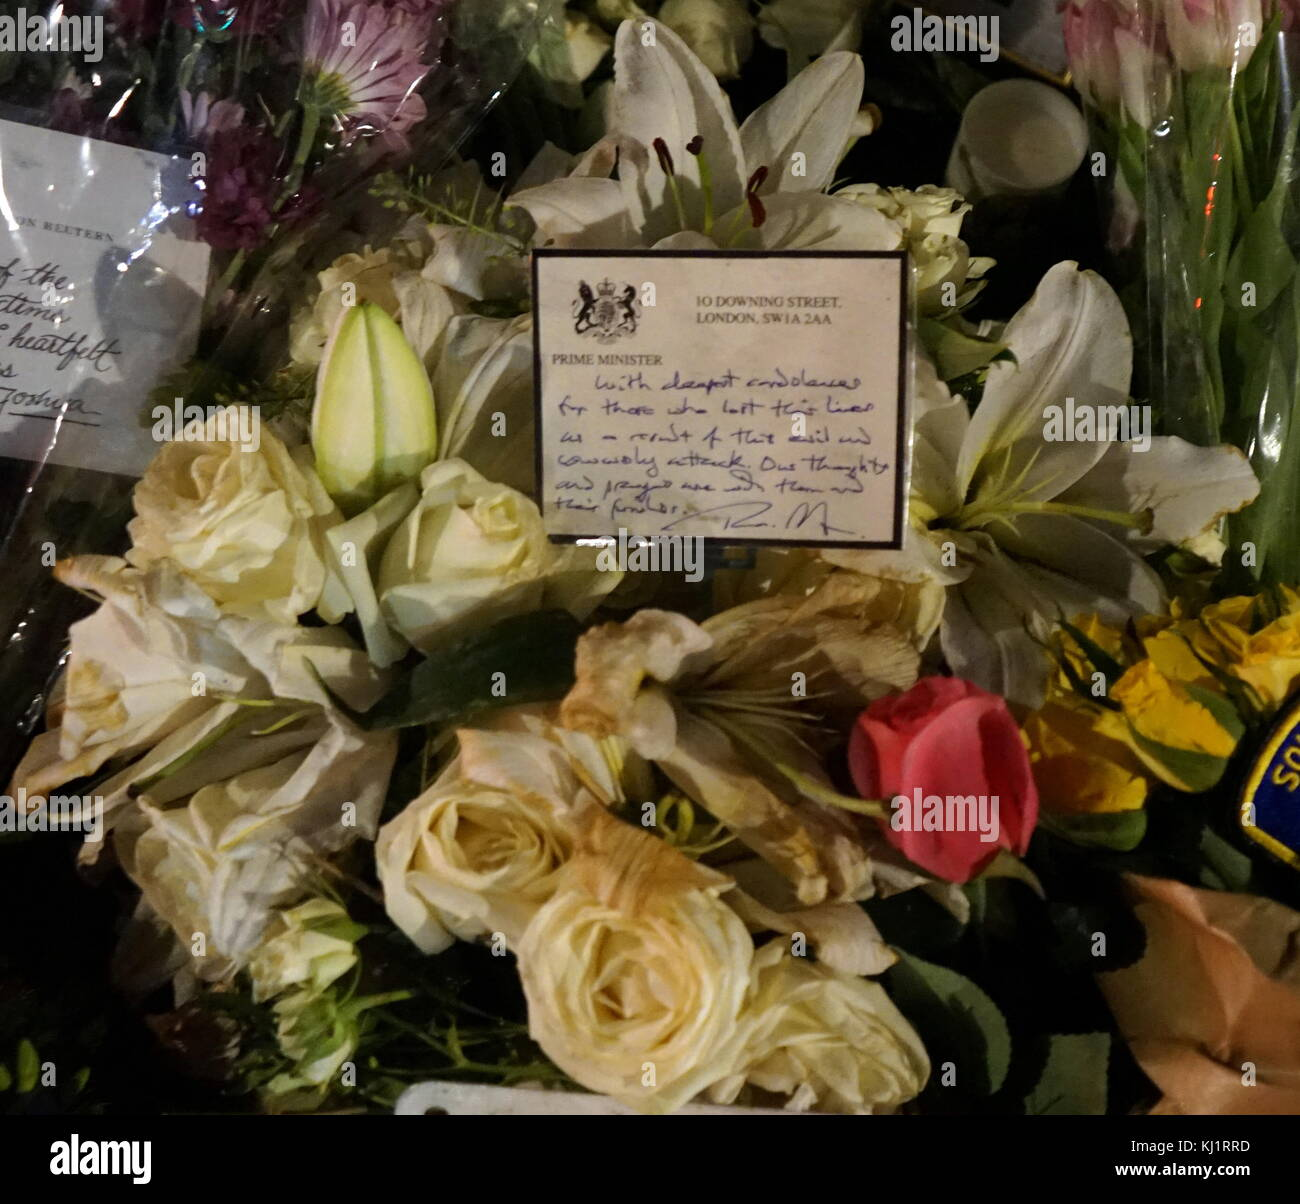 Flowers and tribute from British Prime Minister Theresa May, for the murdered Police officer, PC Keith Palmer, at - Stock Image